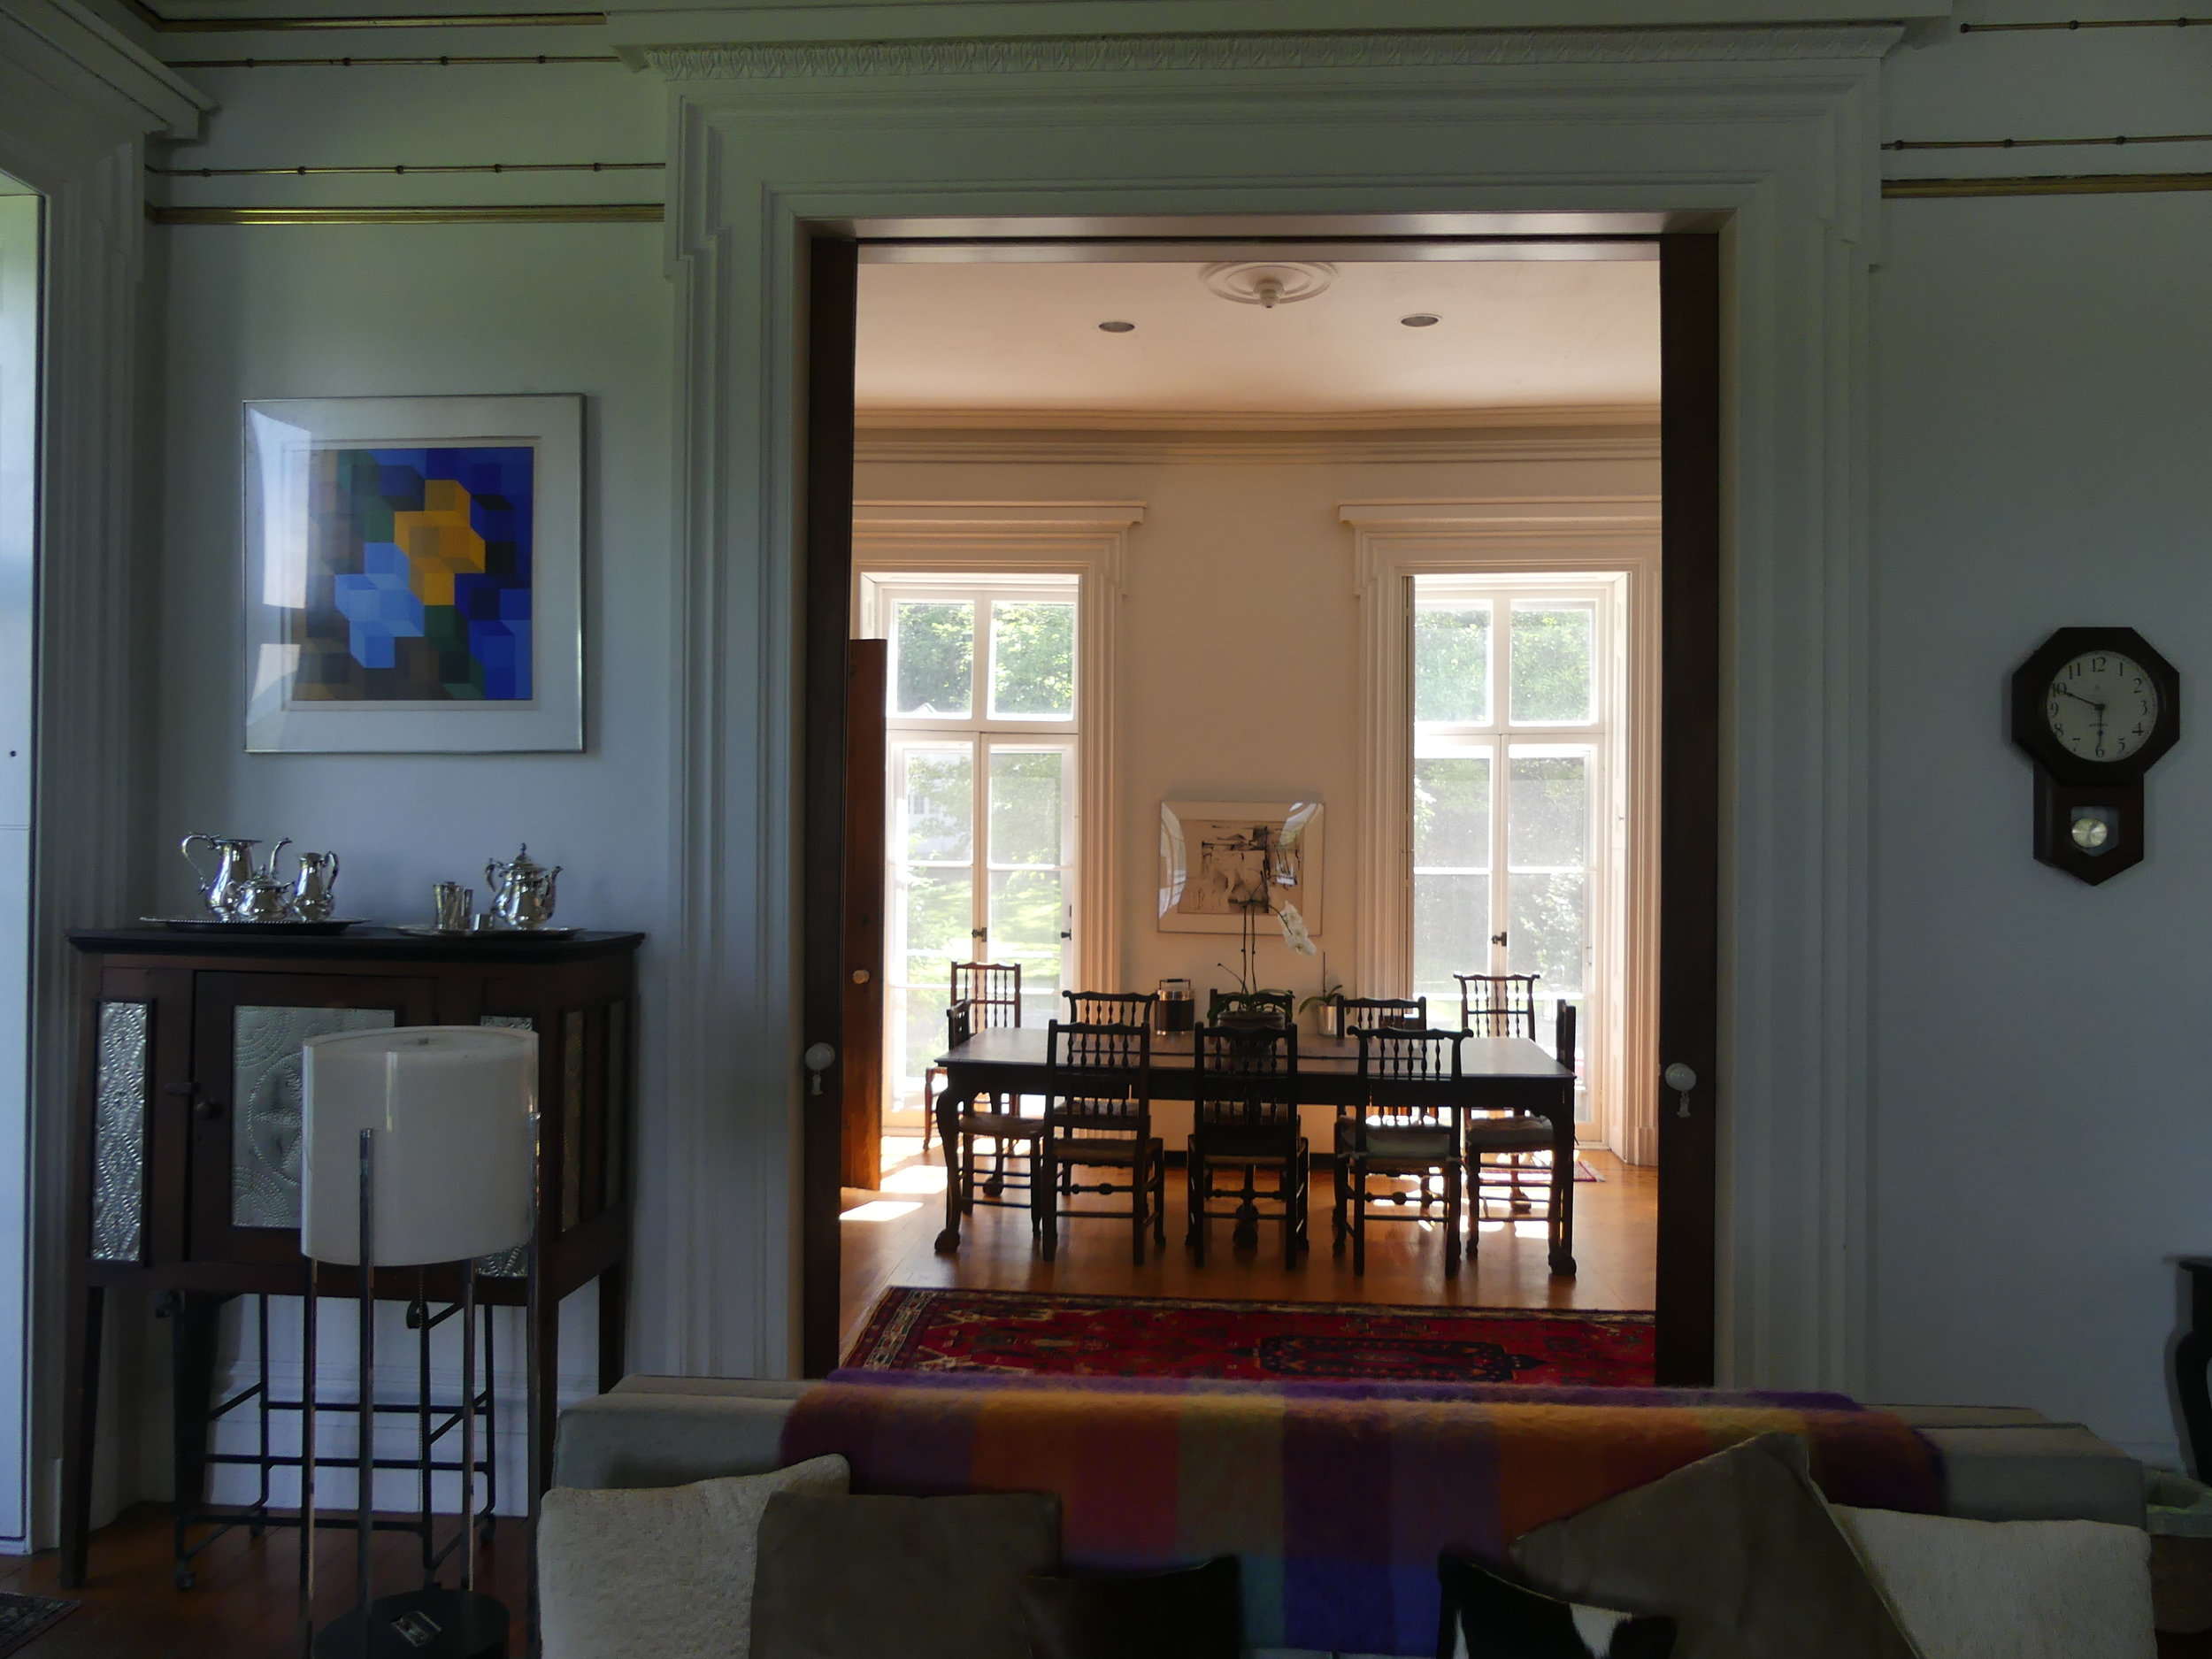 North Parlor/Dining room